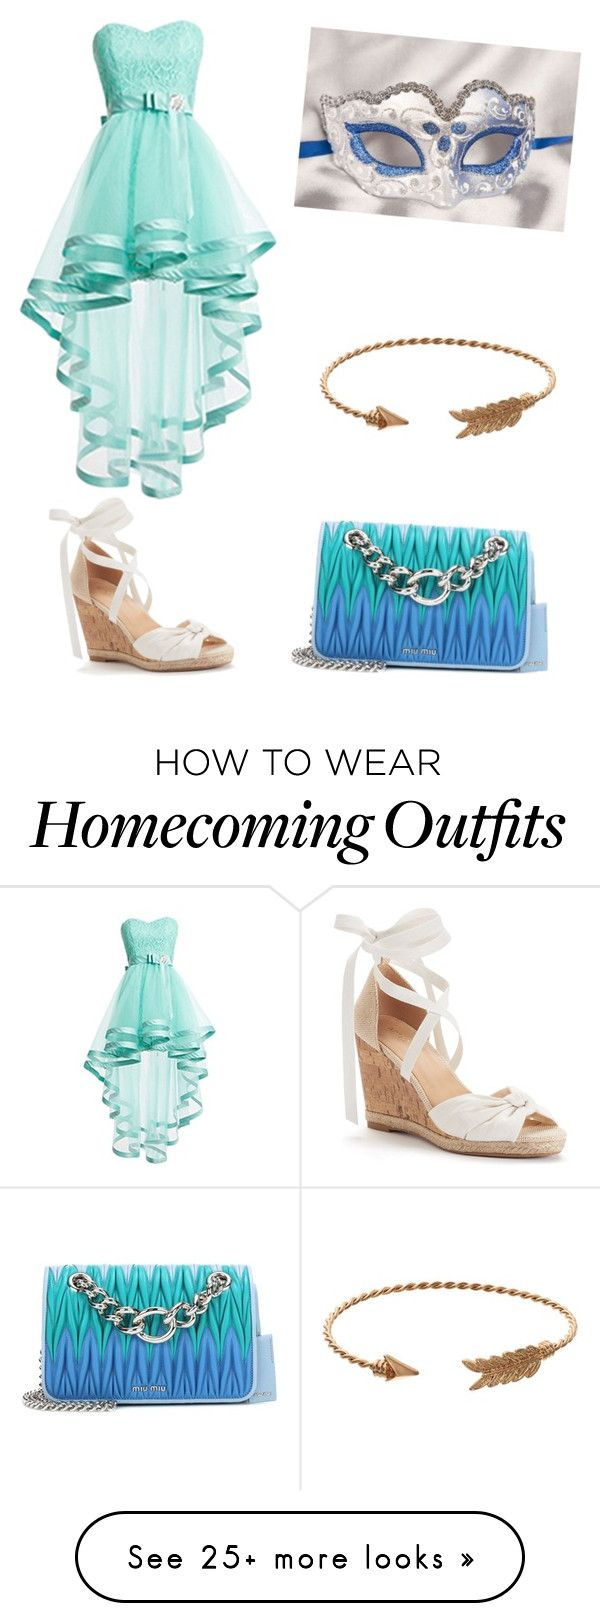 """""""Masquerade ball"""" by emmie-queen on Polyvore featuring Mudd, Masquerade, Apt. 9 and Miu Miu"""